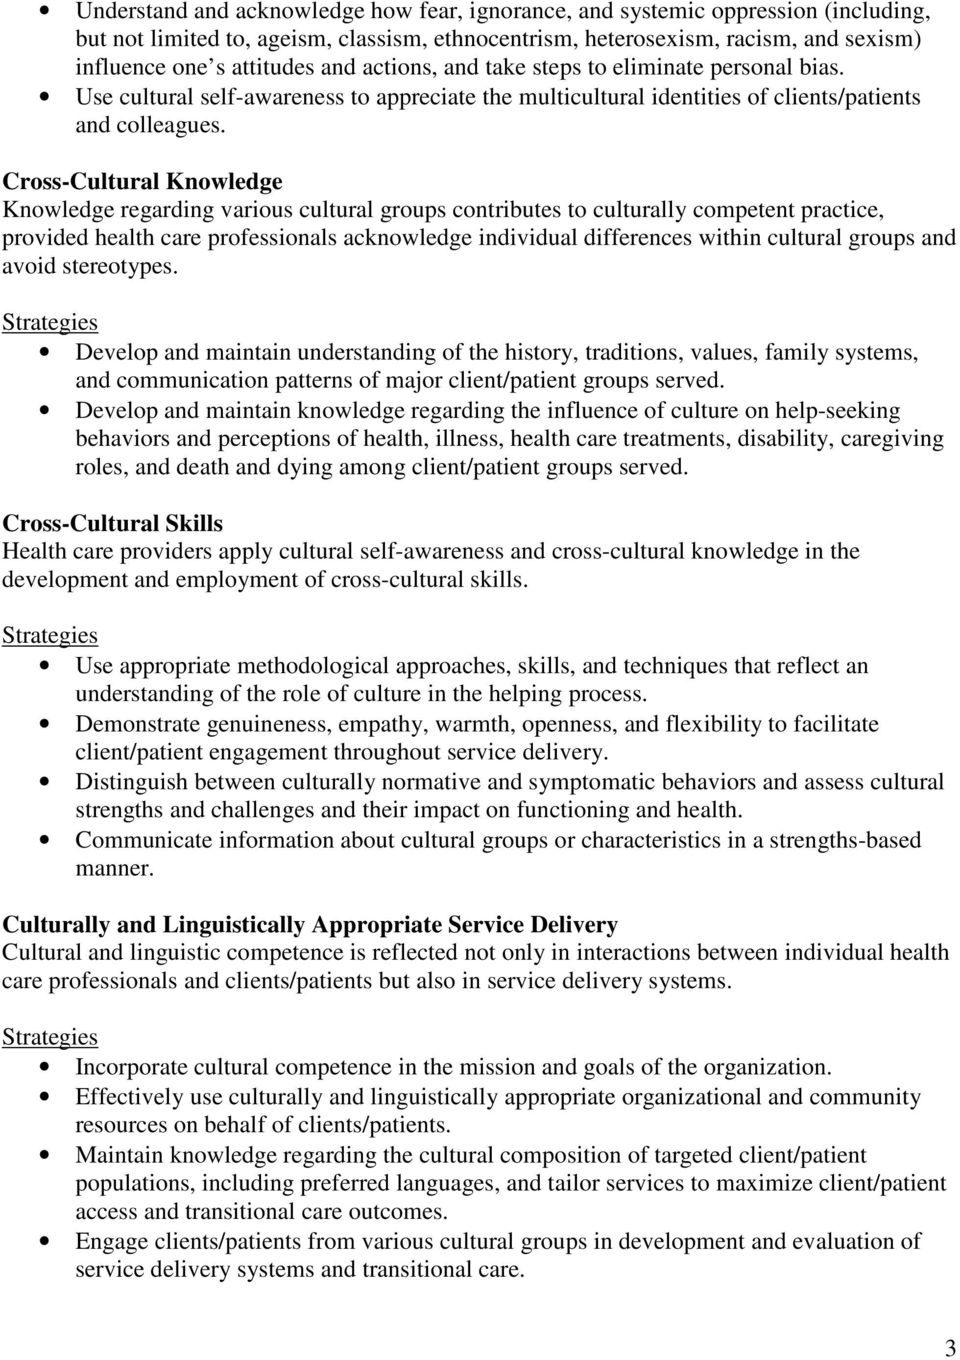 Cross-Cultural Knowledge Knowledge regarding various cultural groups contributes to culturally competent practice, provided health care professionals acknowledge individual differences within